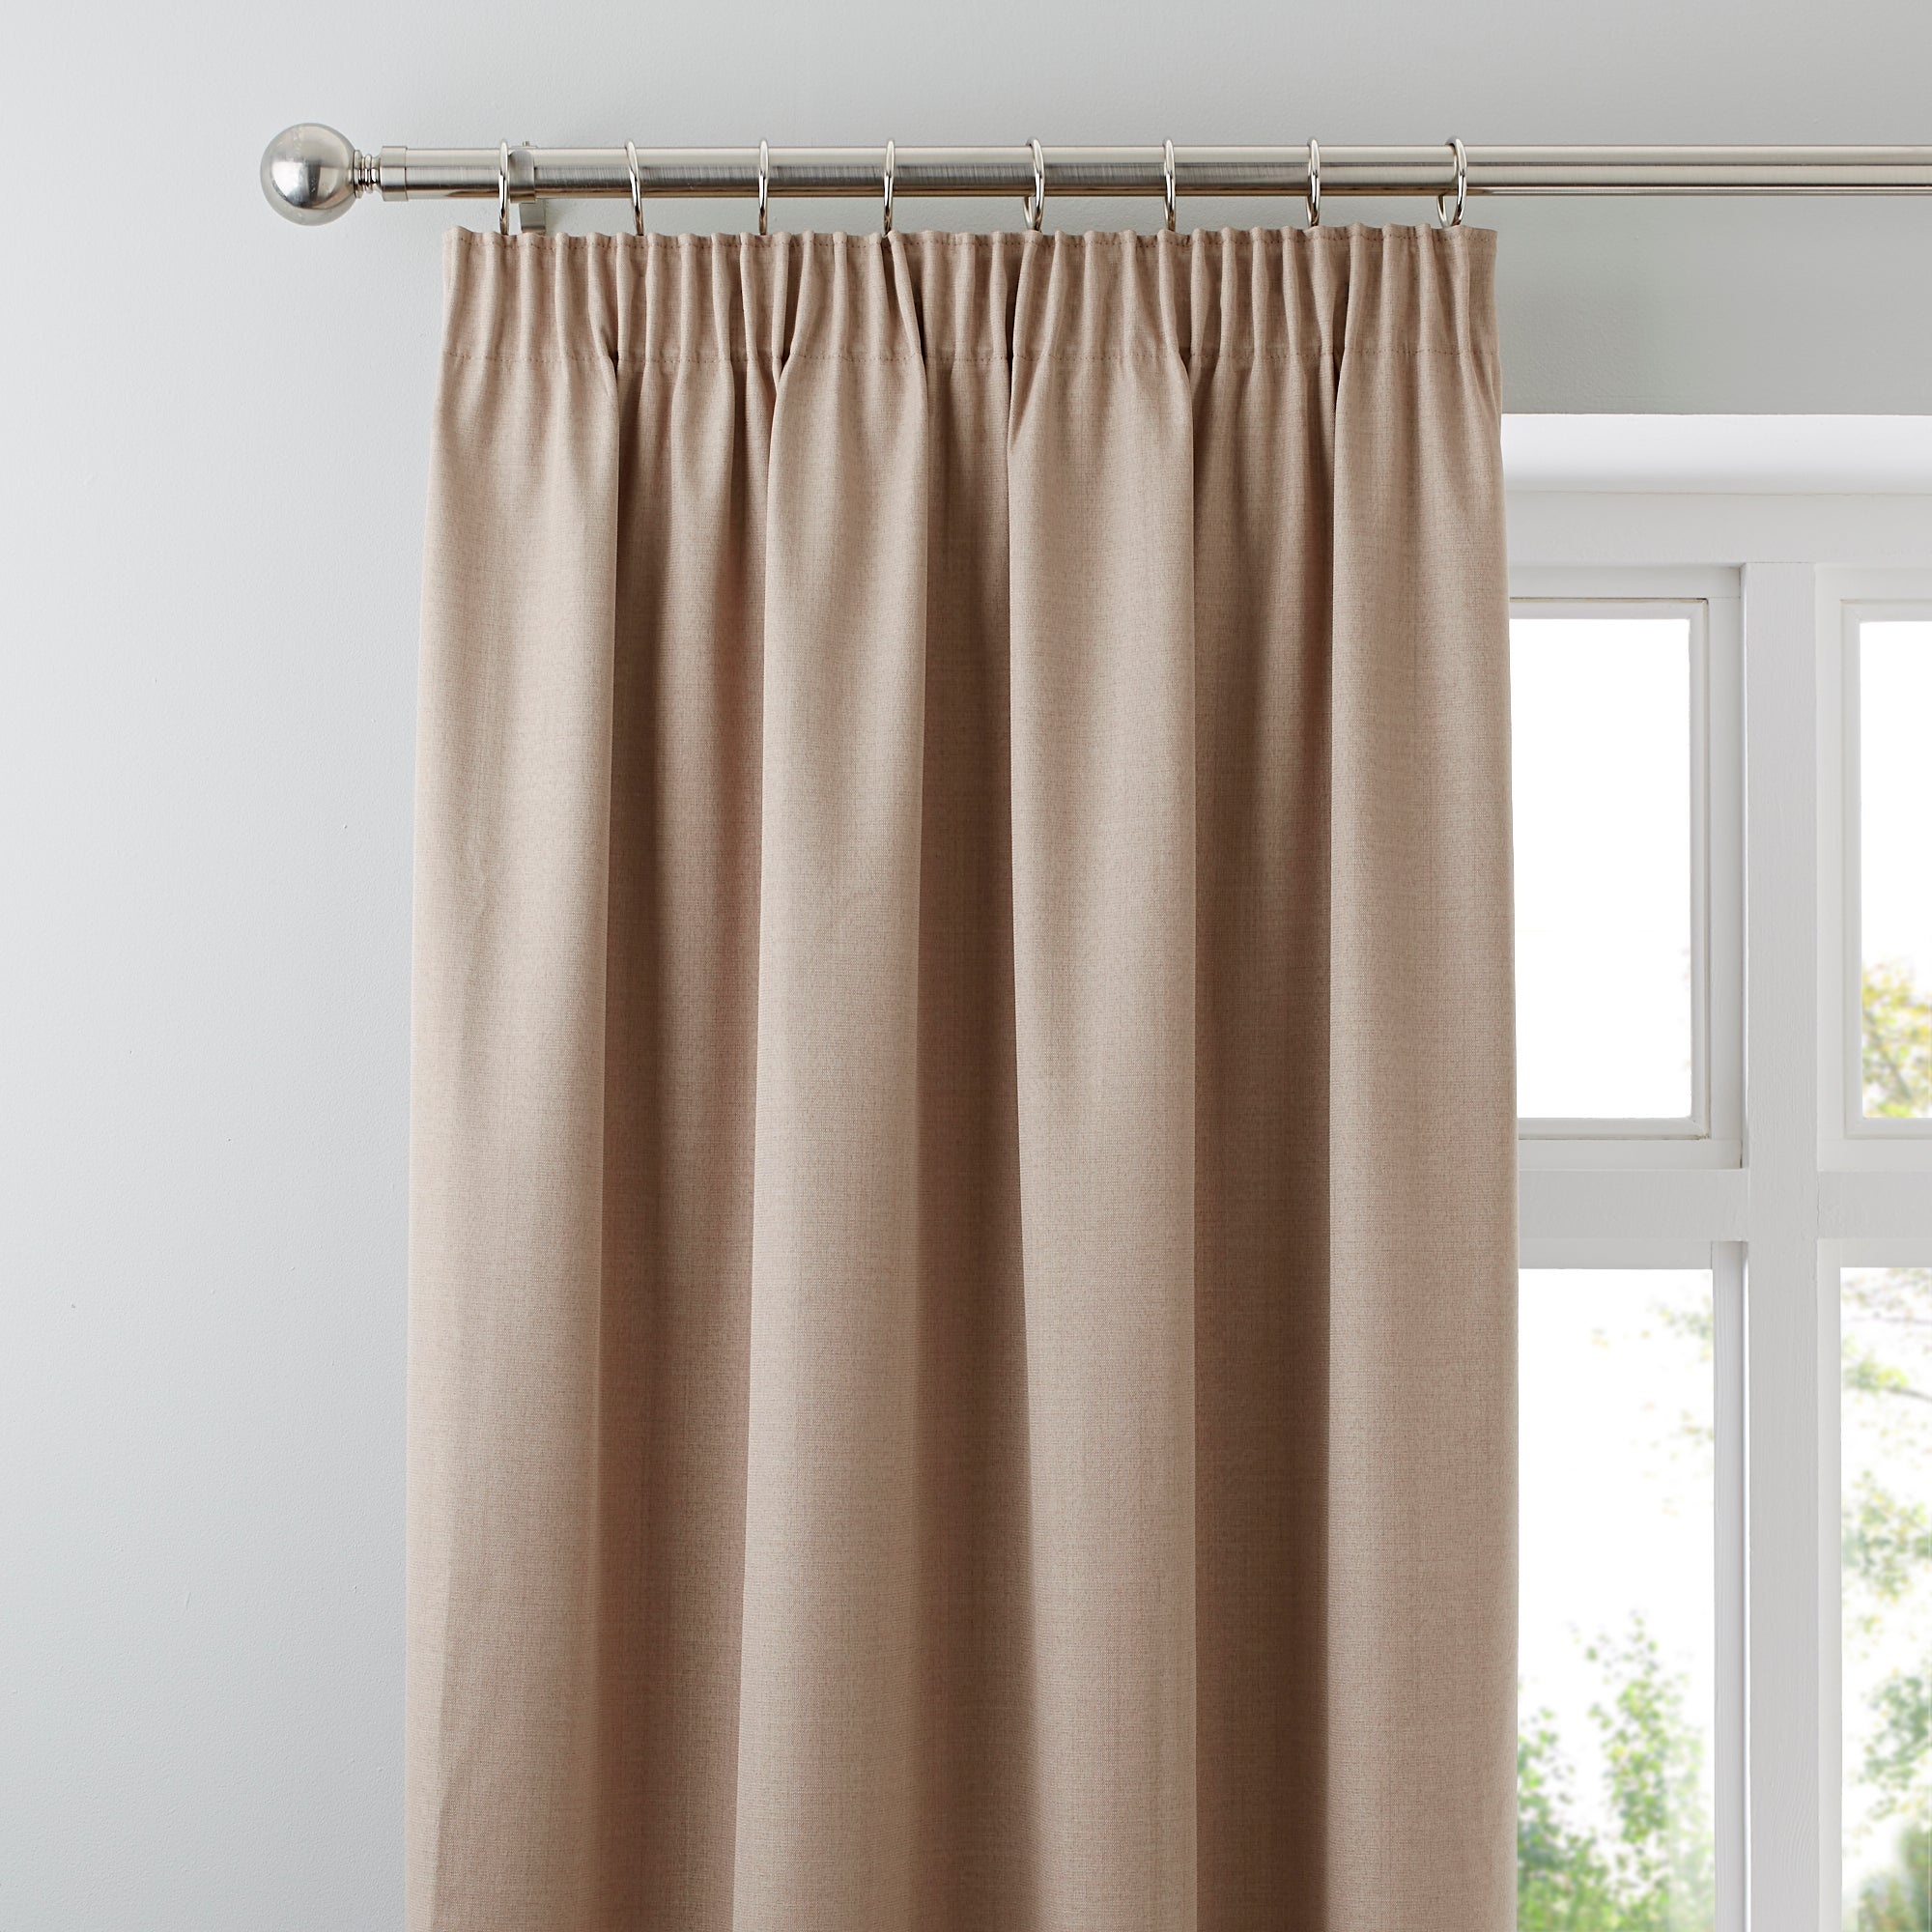 Waters and Noble Biscuit Solar Blackout Curtains